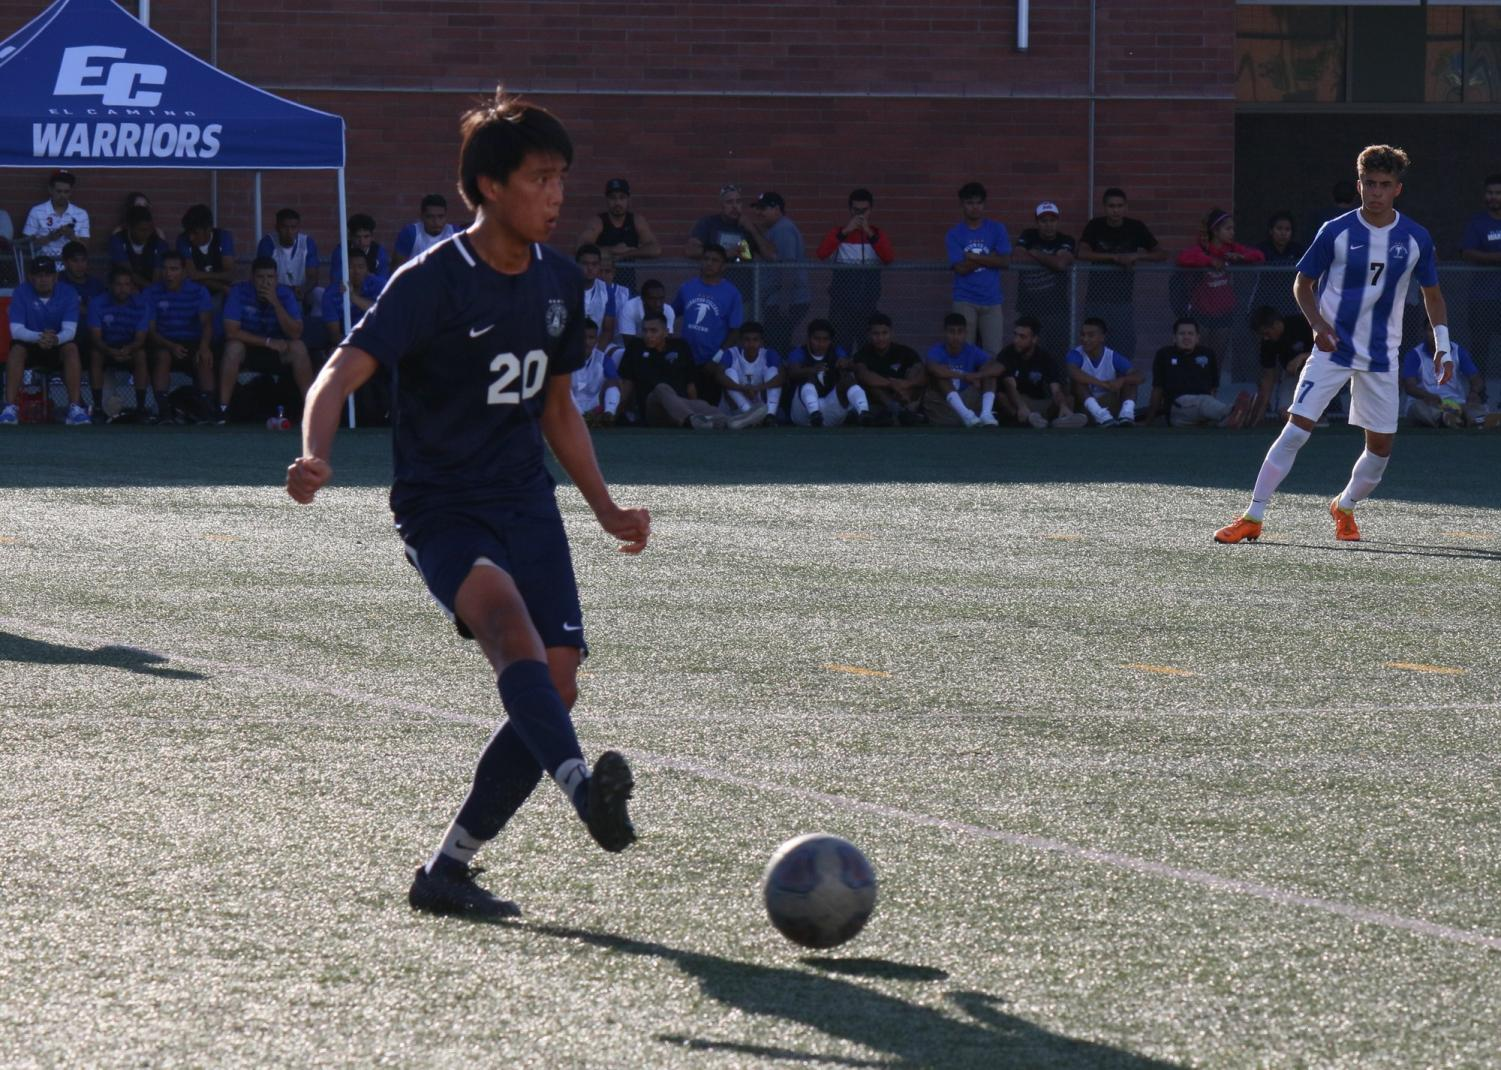 El Camino College midfielder Matthew Villongco makes a pass during a match against Cerritos College Friday, Oct.11, at the PE and Athletics Field. Villongco has one assist on the year for the Warriors. Viridiana Flores/ The Union